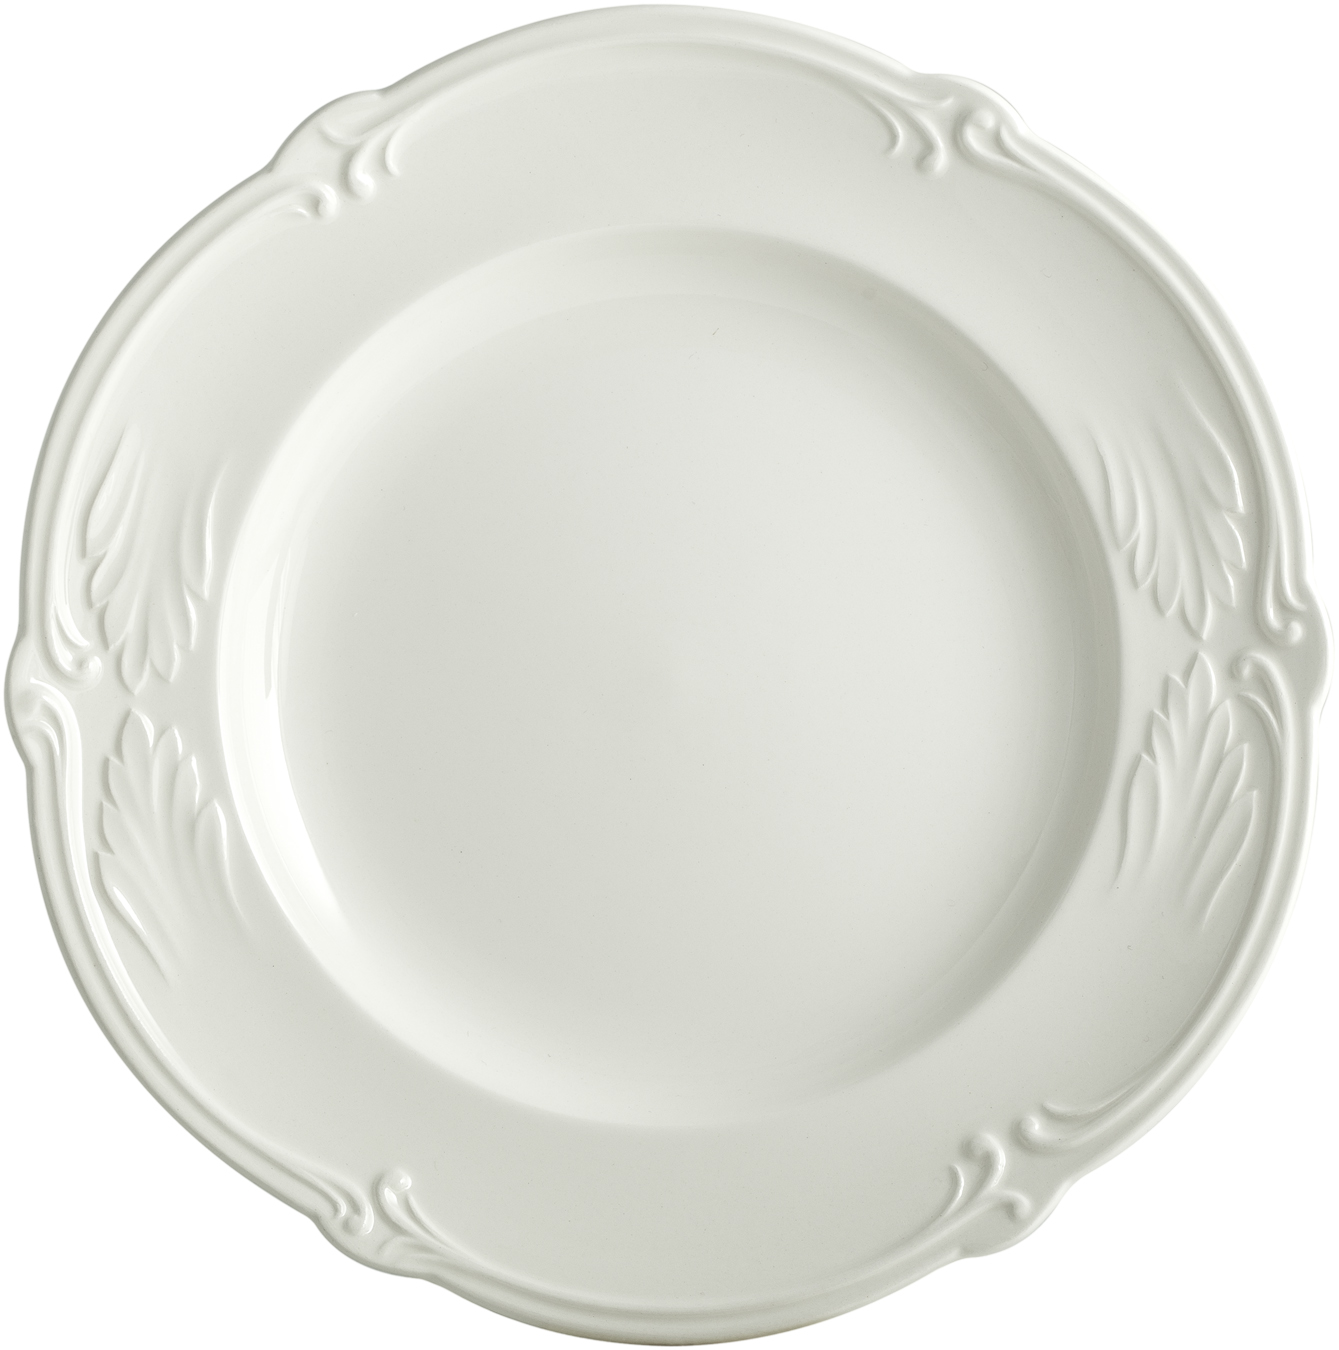 Rocaille White Canape Plate 6 11/16 In Dia | Gracious Style  sc 1 st  Gracious Style & Gien France Rocaille White Dinnerware | Gracious Style